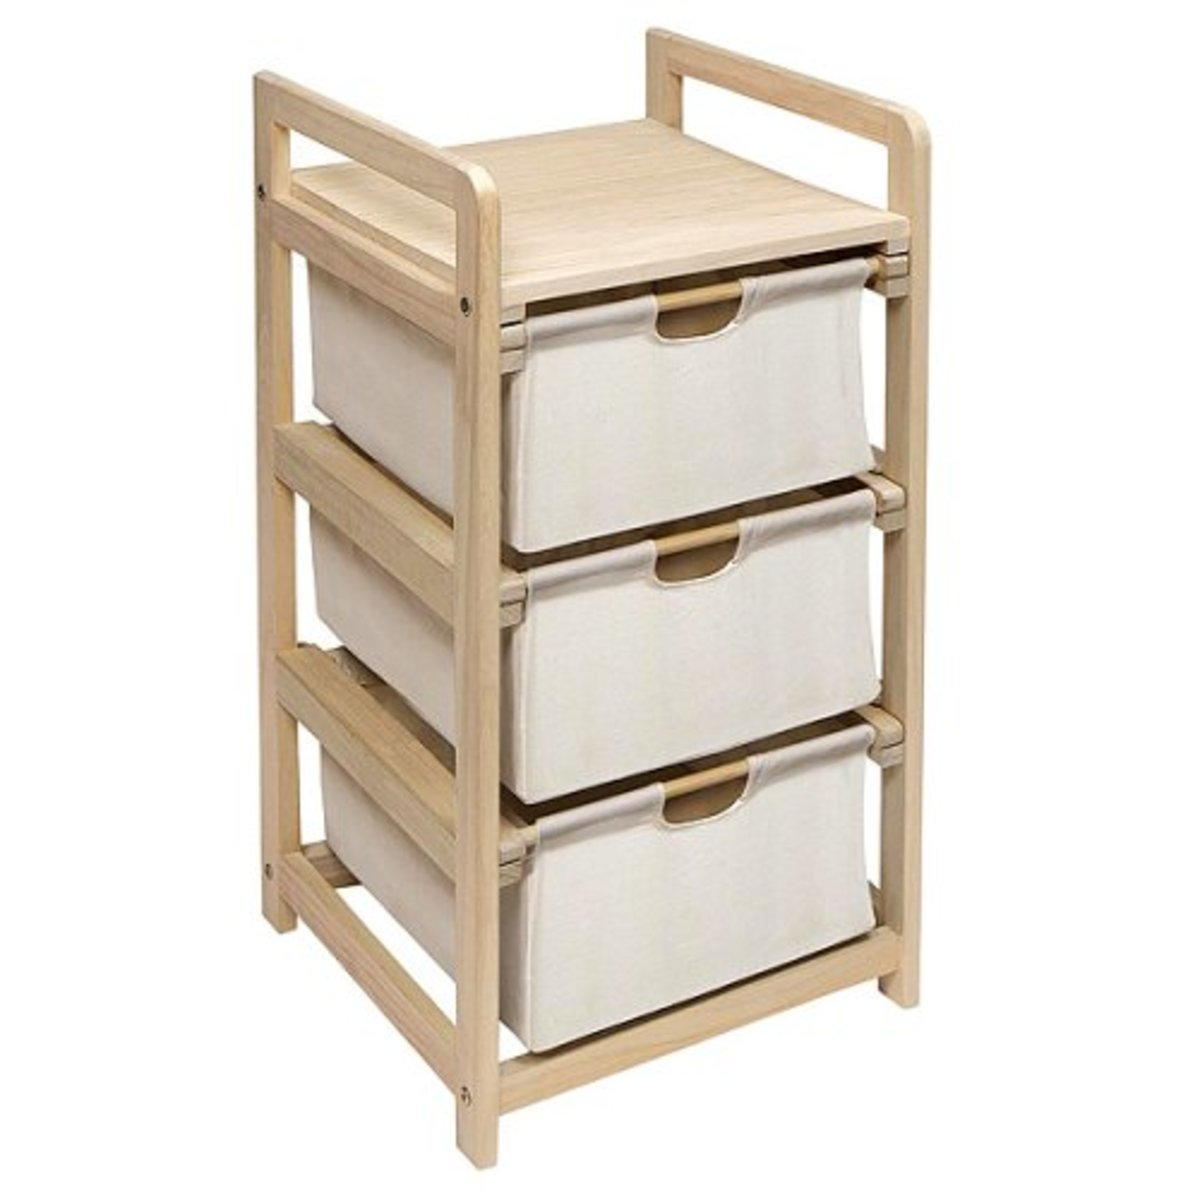 Hamper 3-Drawer Storage Unit- Image Credit: Amazon.com